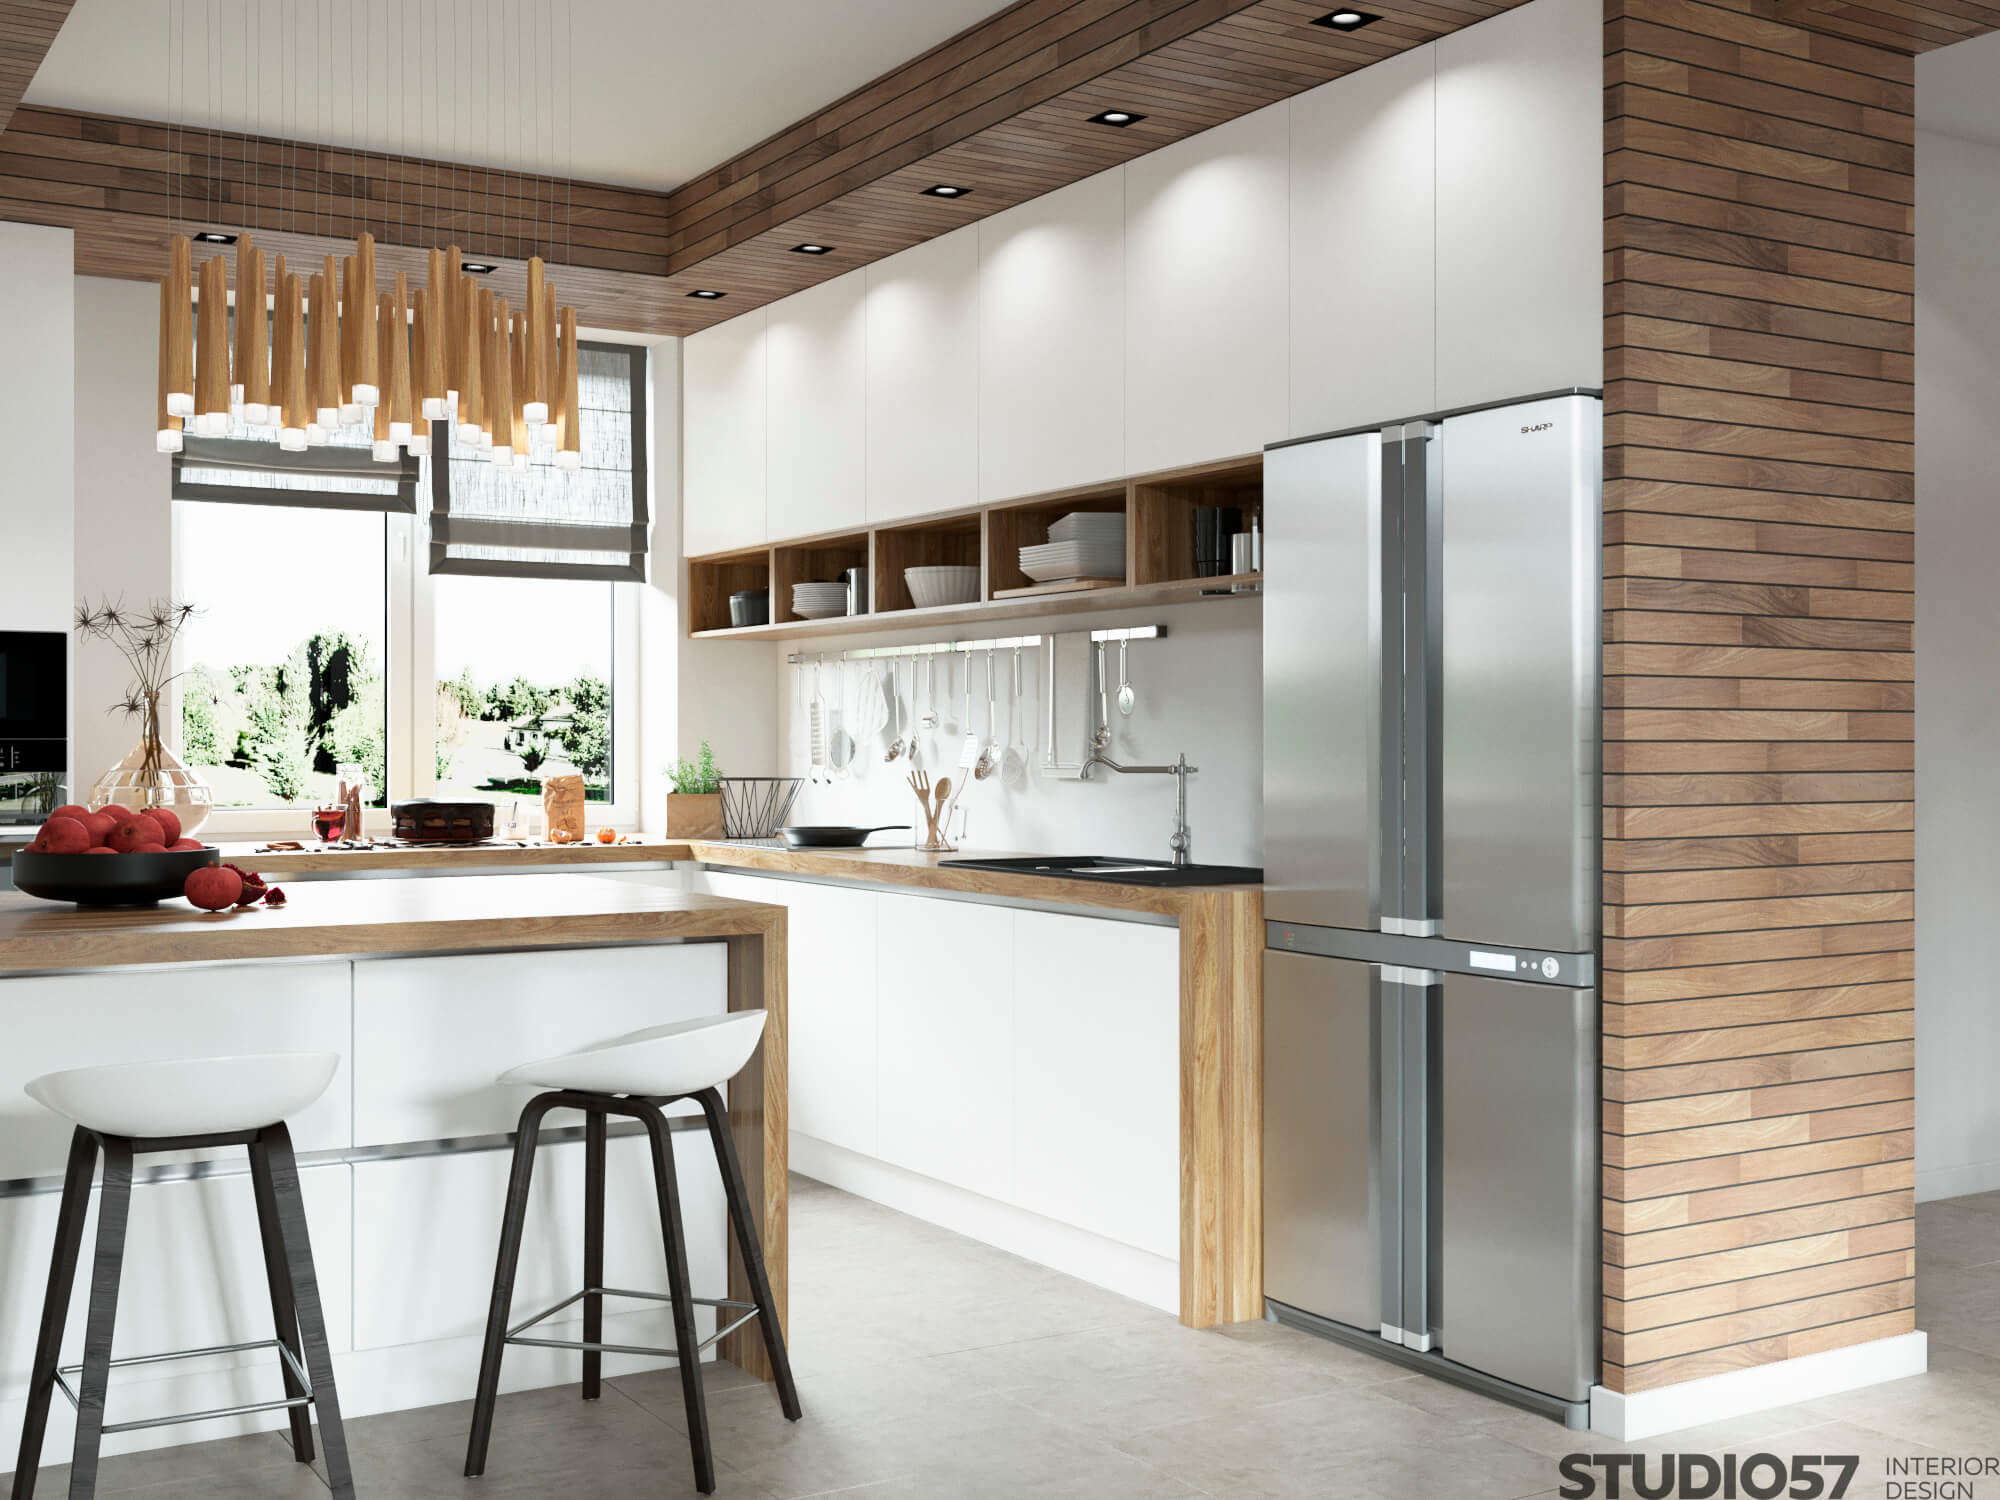 Contemporary kitchen in a private house